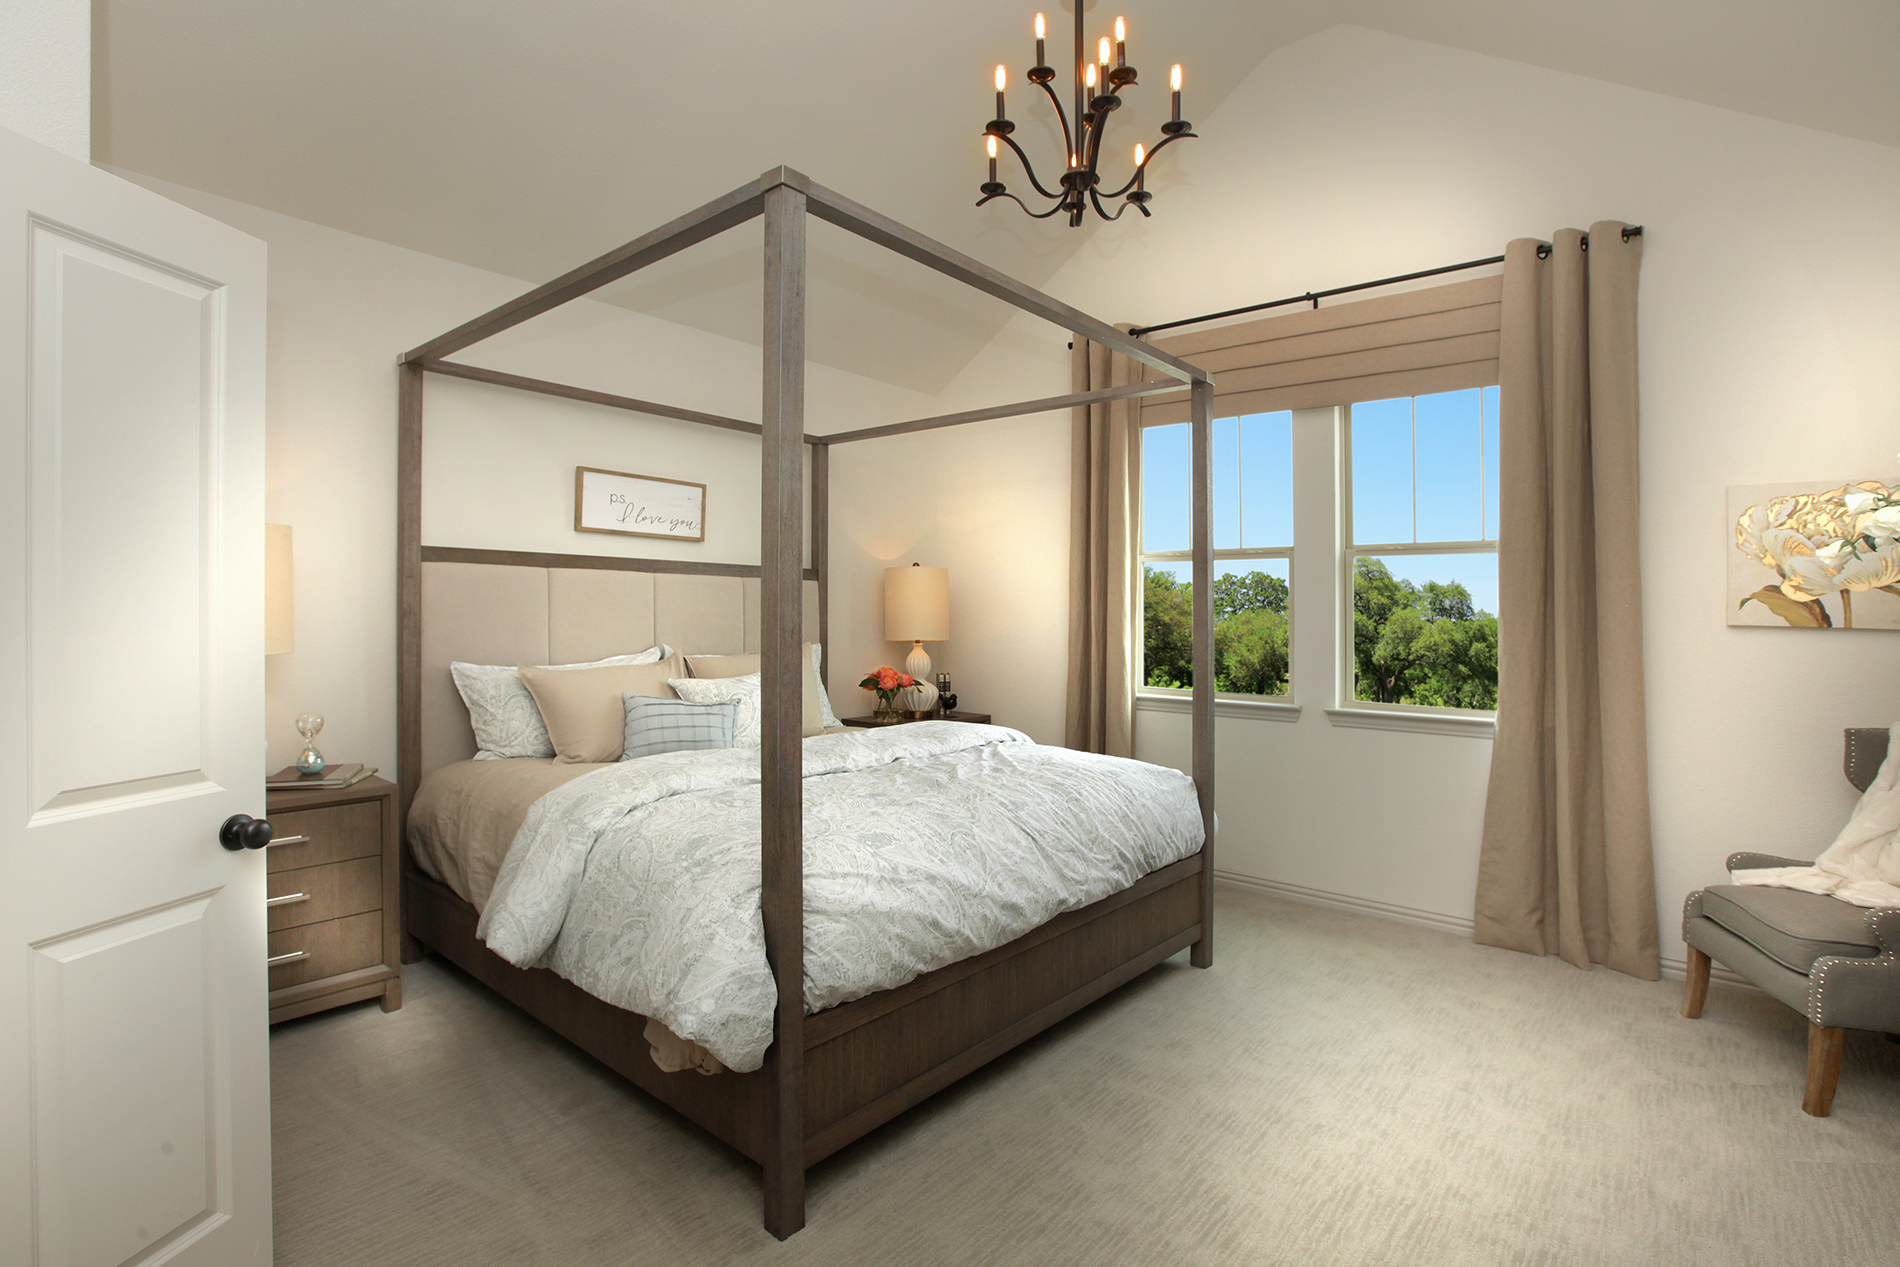 Viridian arlington model homes